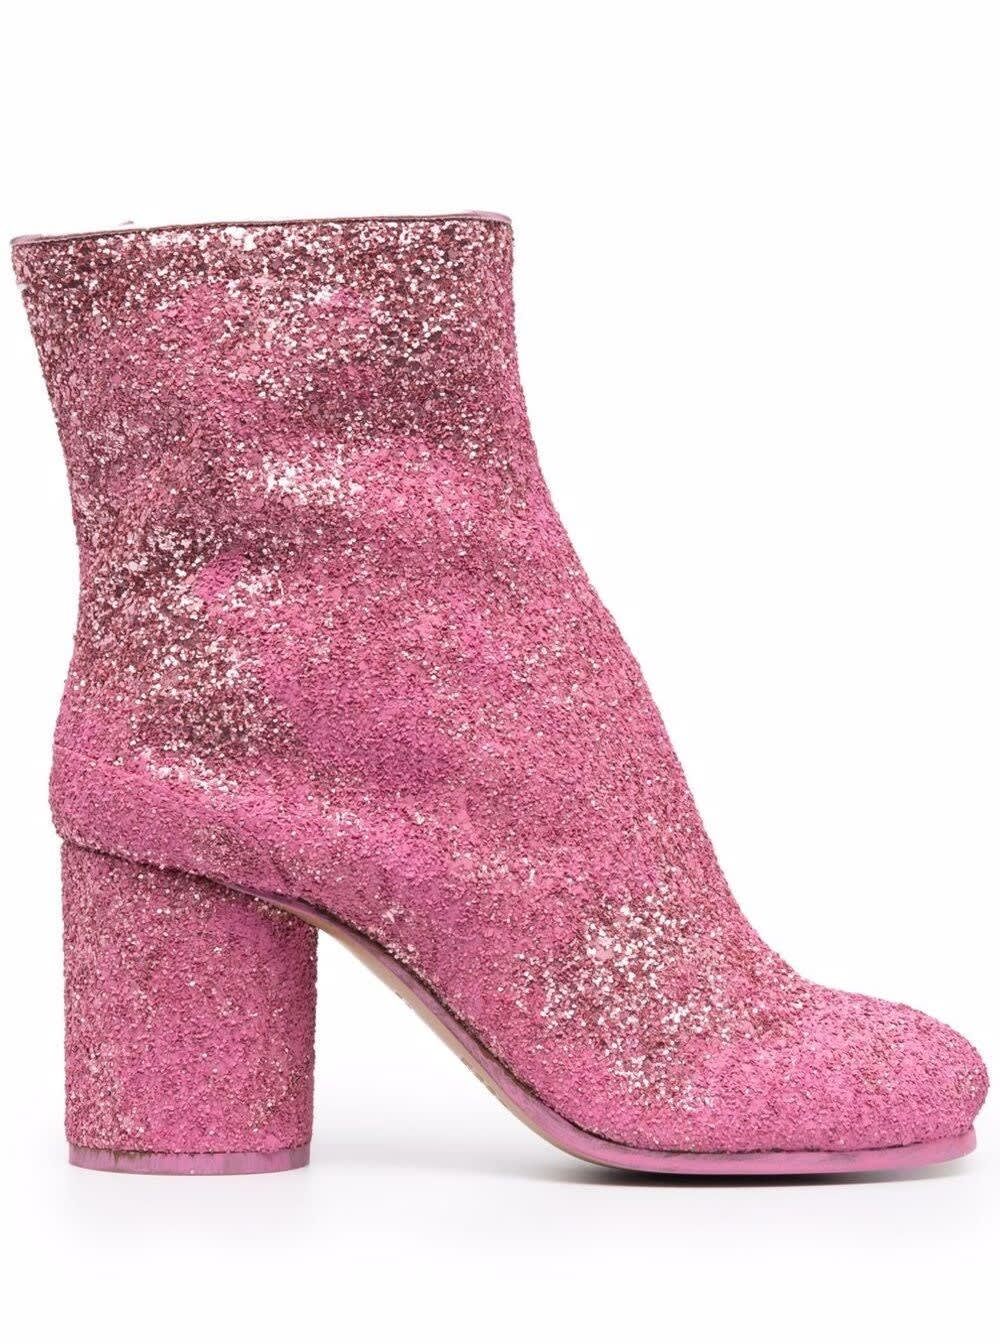 Buy Maison Margiela Glittred Pink Tabi Booties online, shop Maison Margiela shoes with free shipping